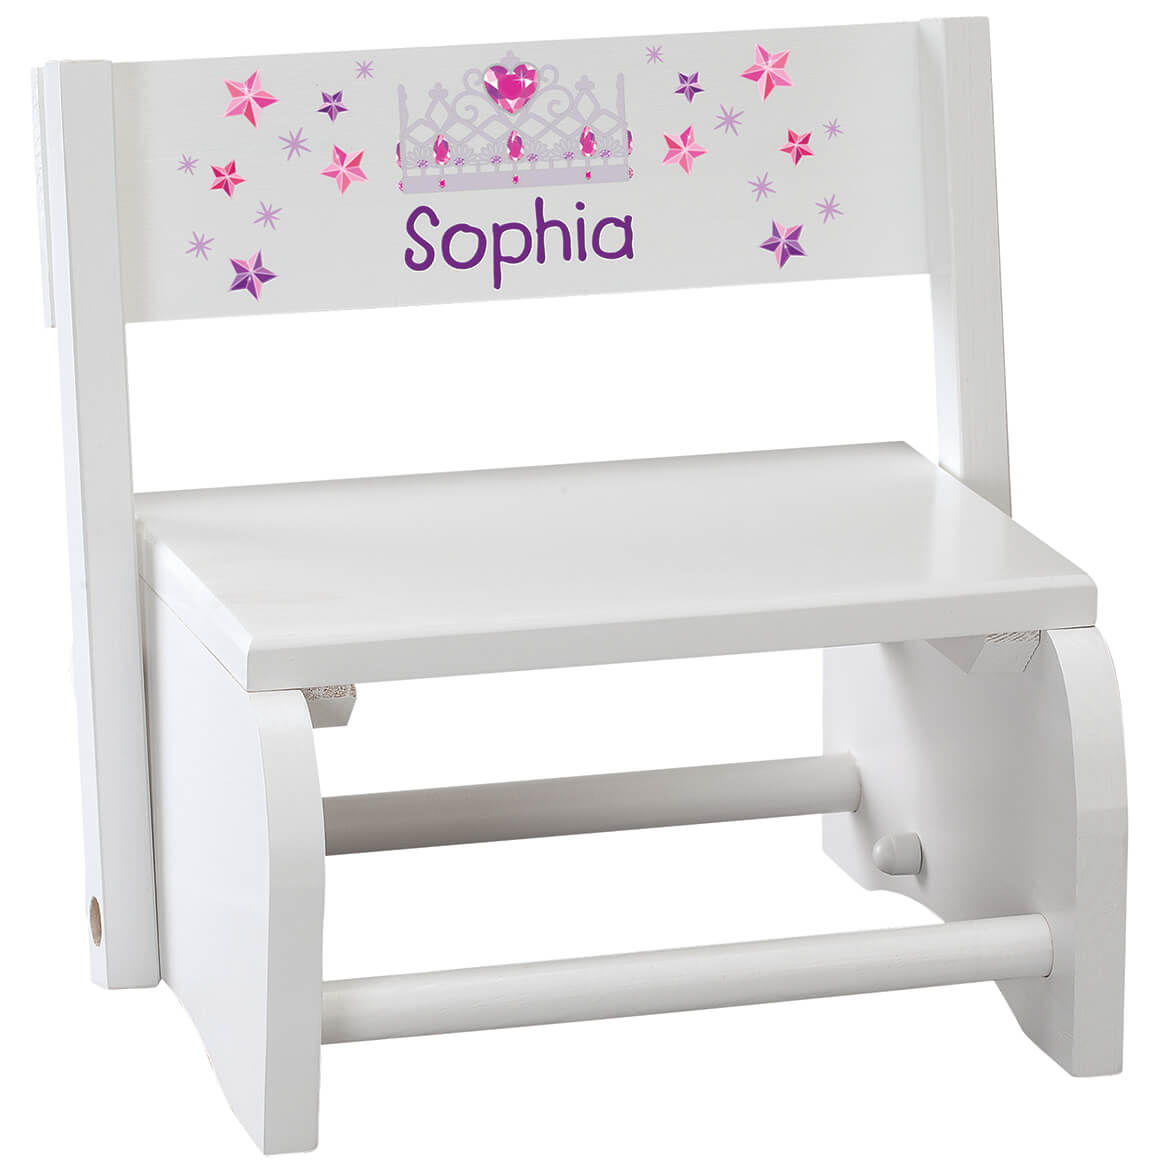 Personalized Children's White Princess Step Stool-368491